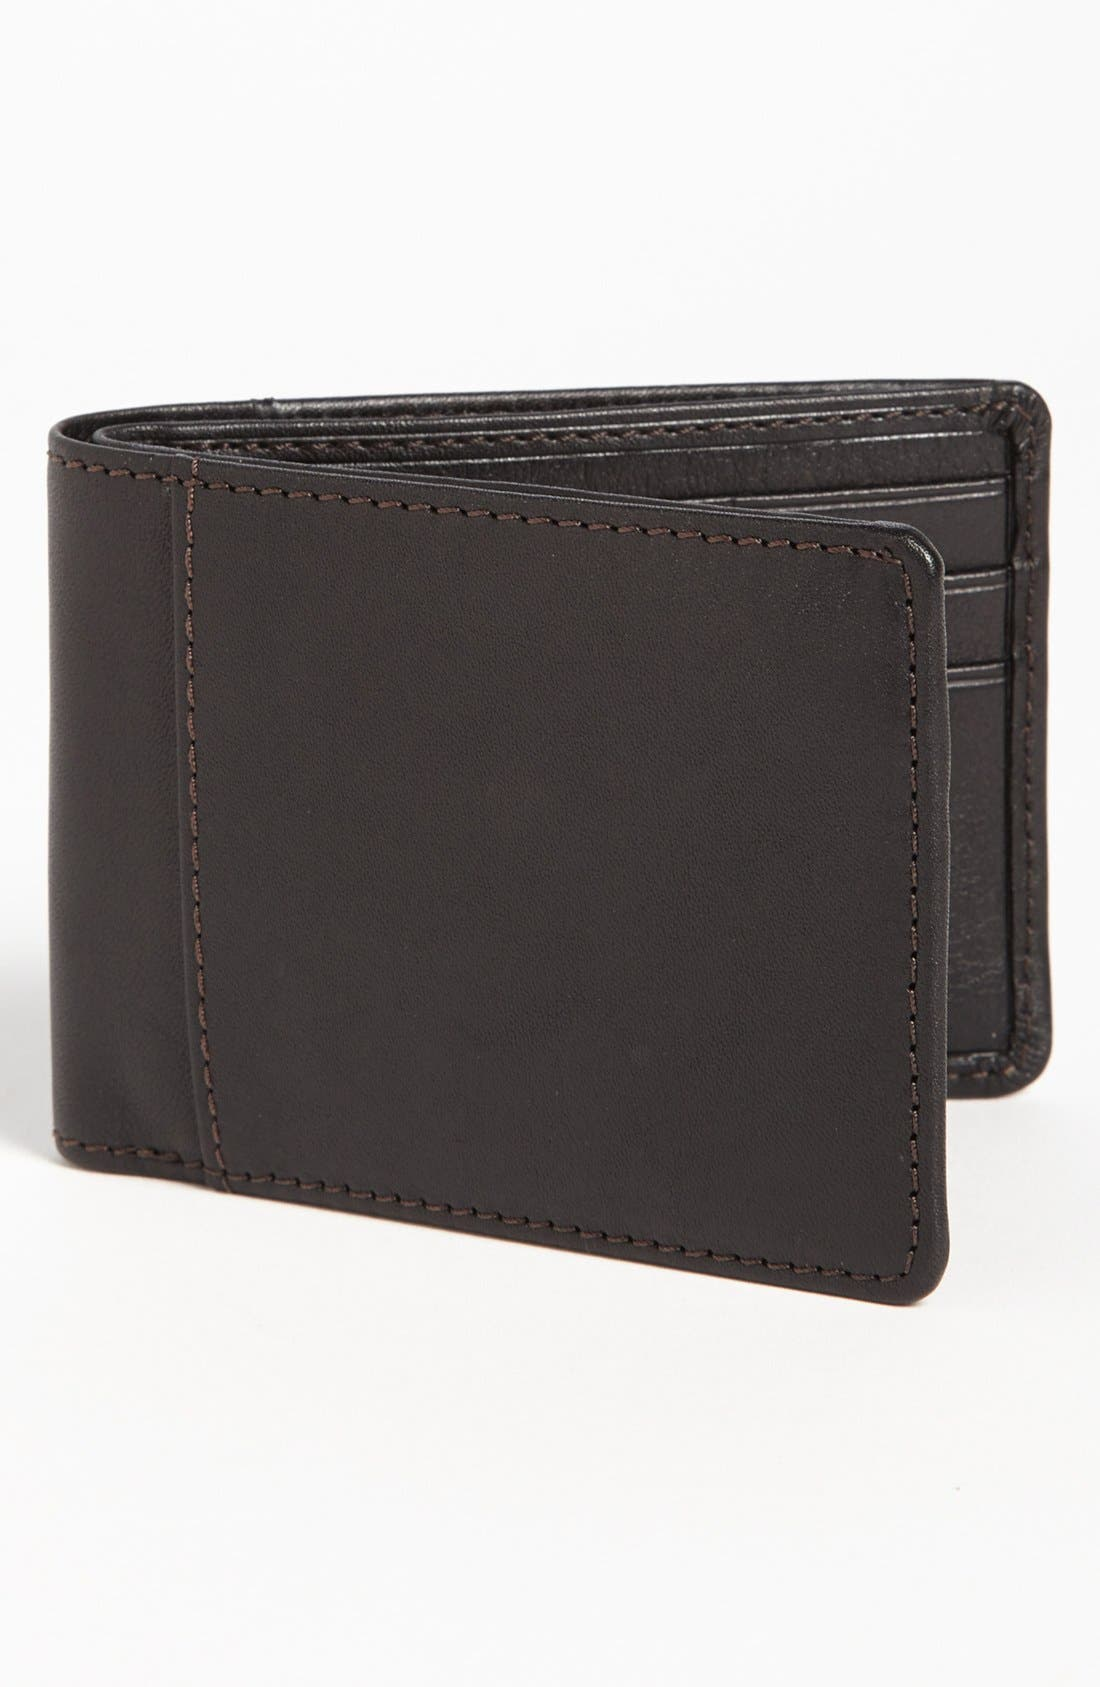 Alternate Image 1 Selected - Bosca Leather Wallet